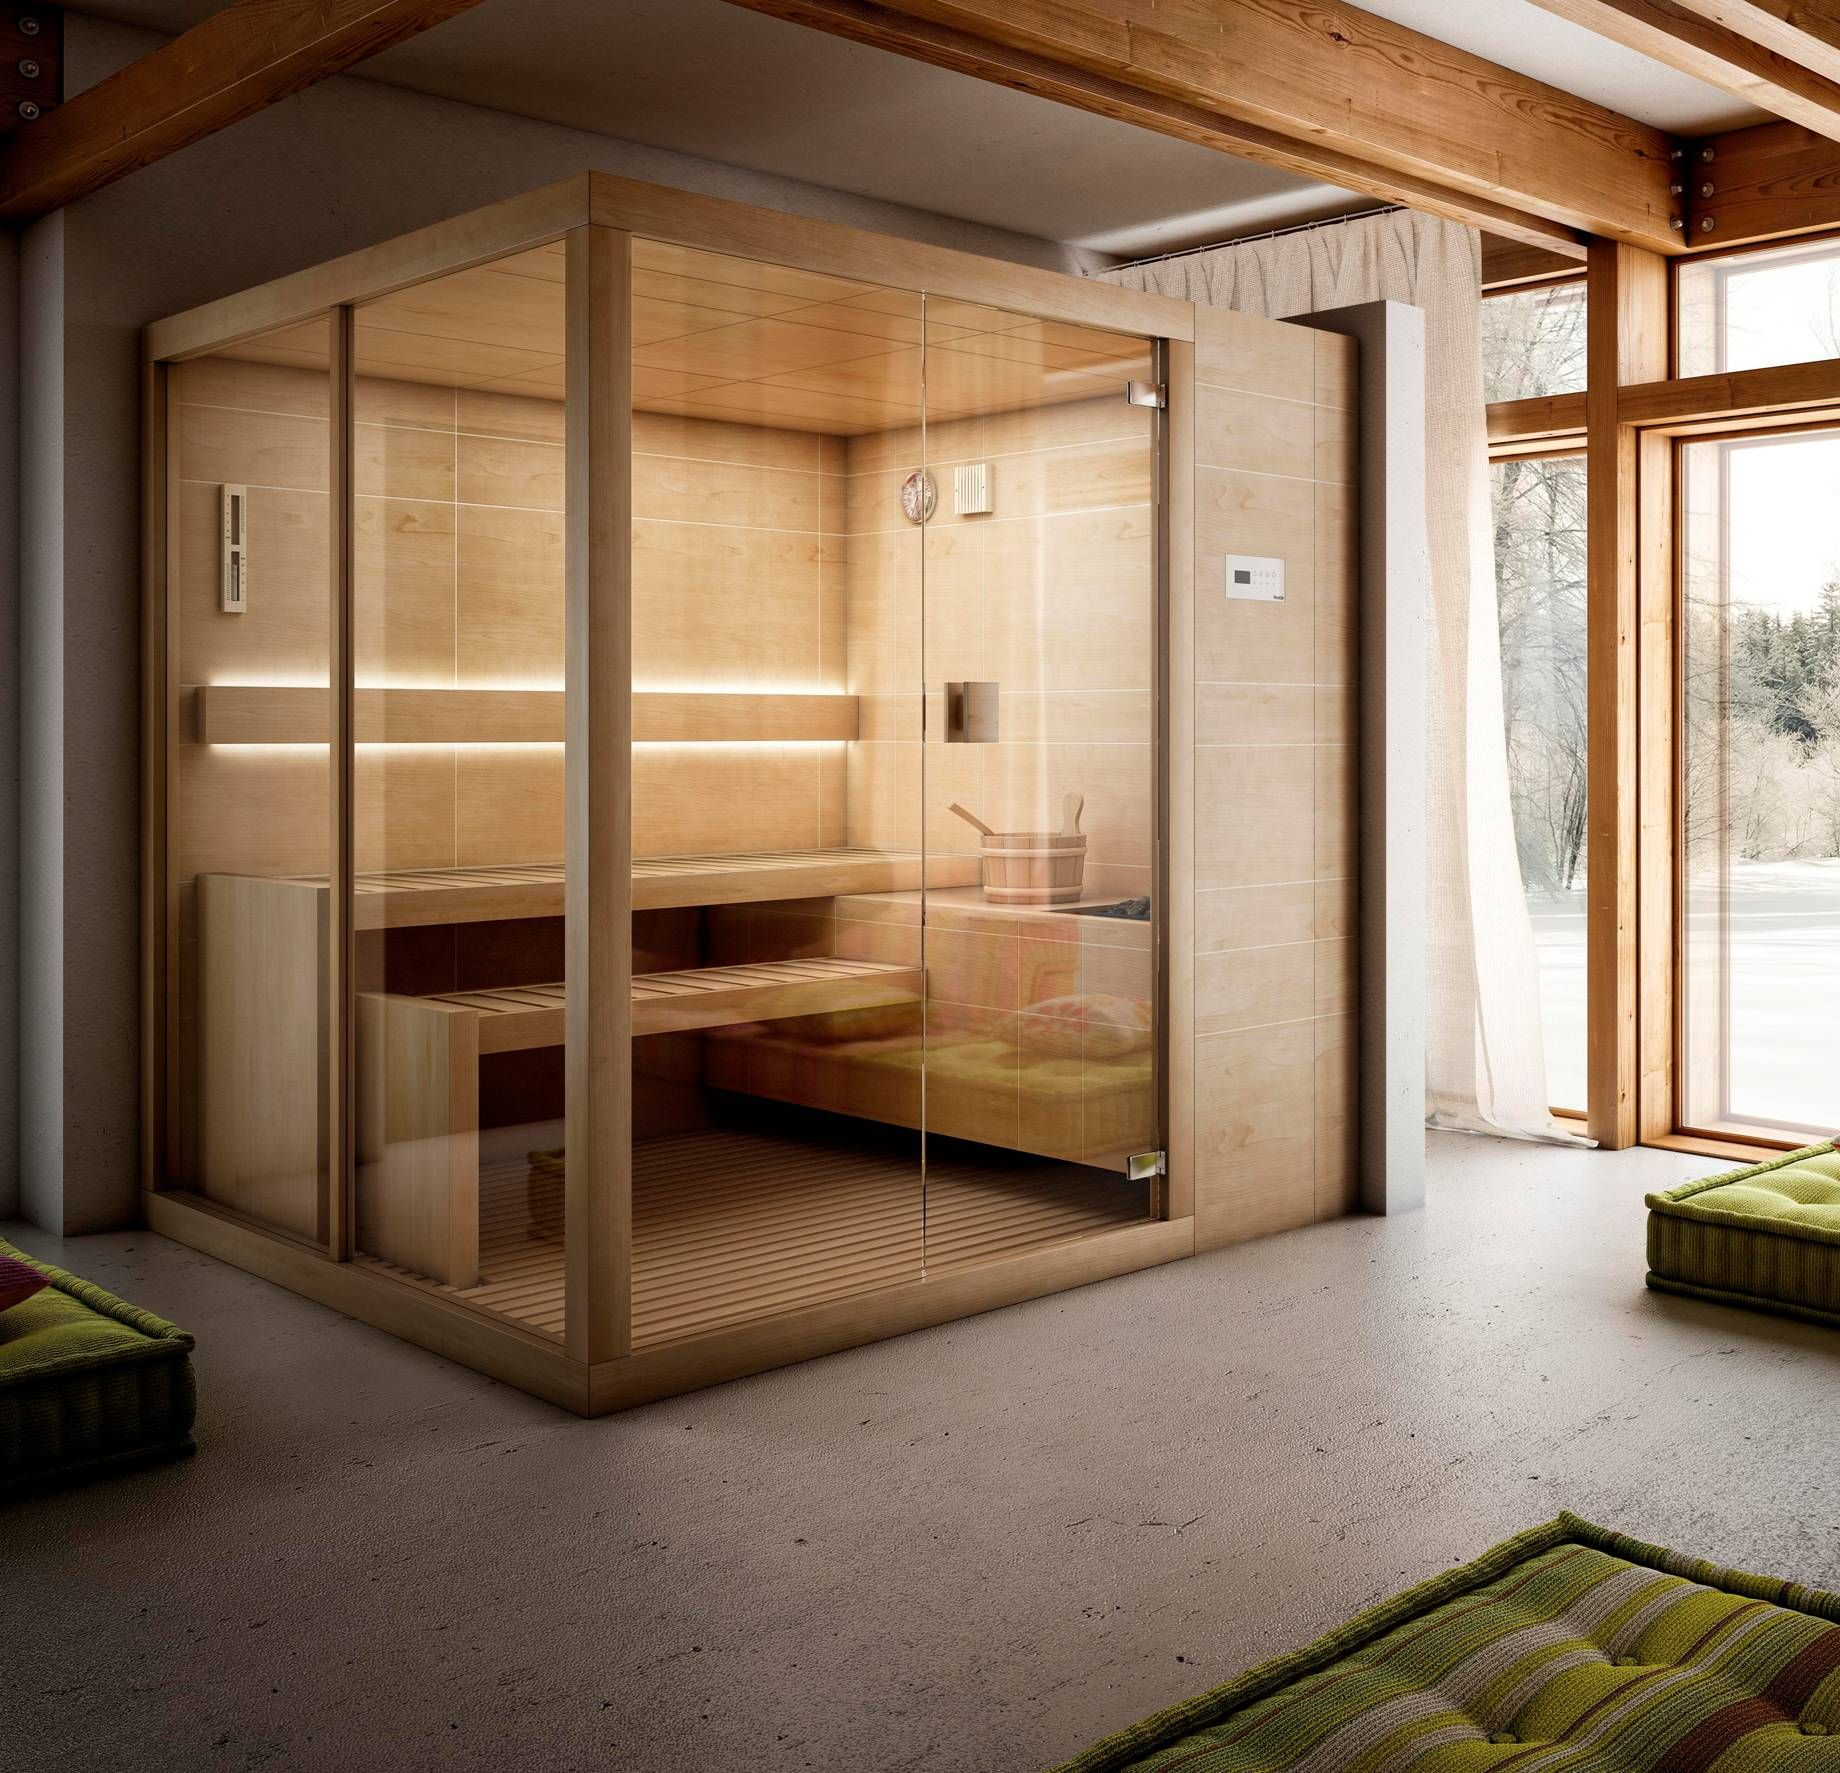 Perfect  ucArja ud Finnish Saunas stands out for the extensive range of dimensions that make